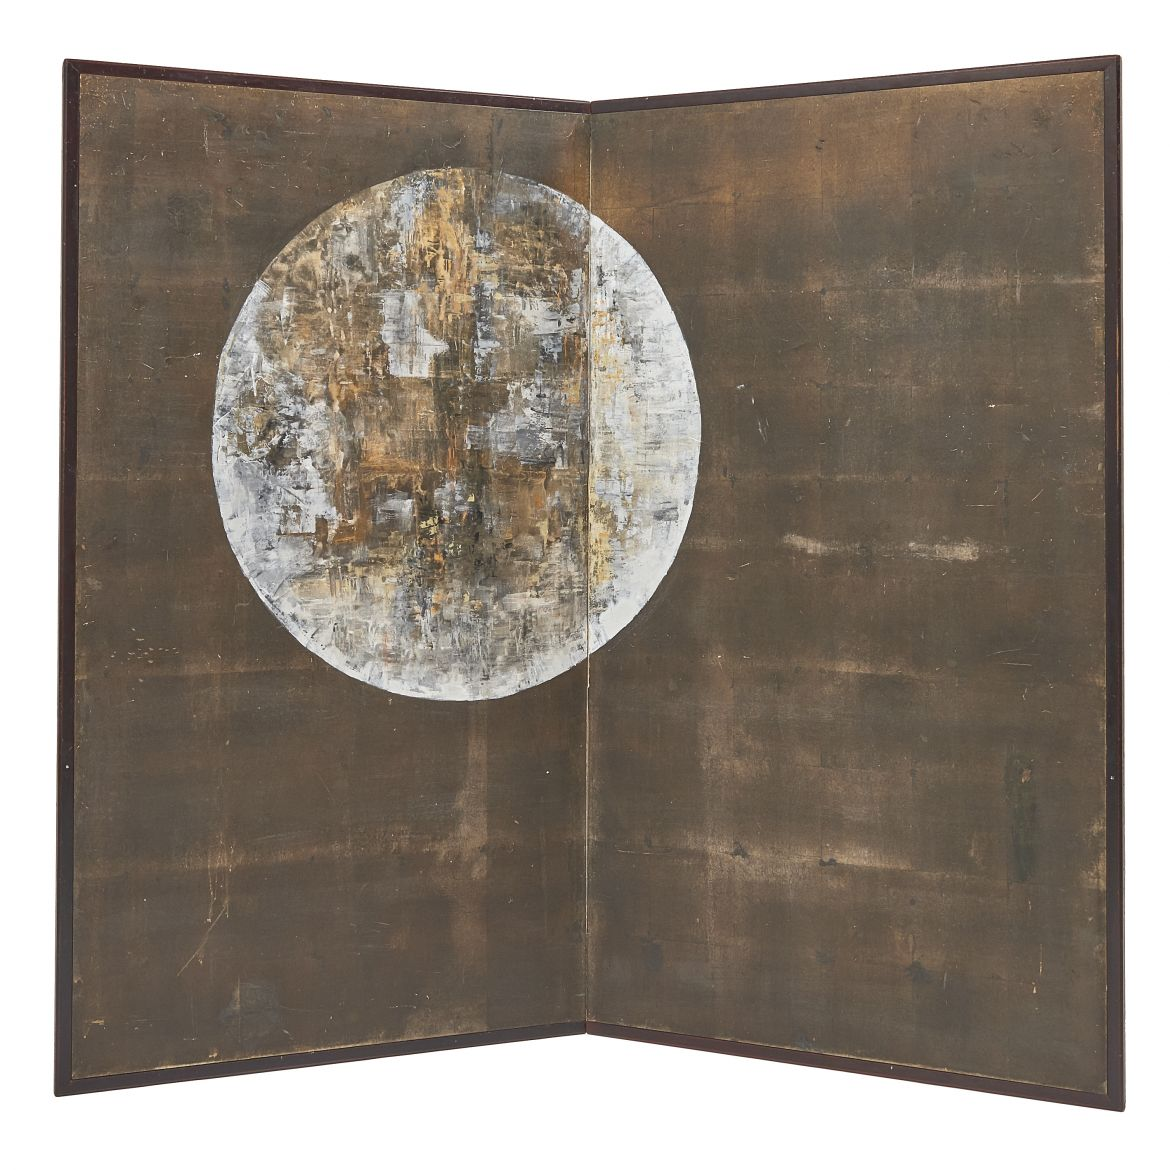 Japanese Screen With Painted Full Moon